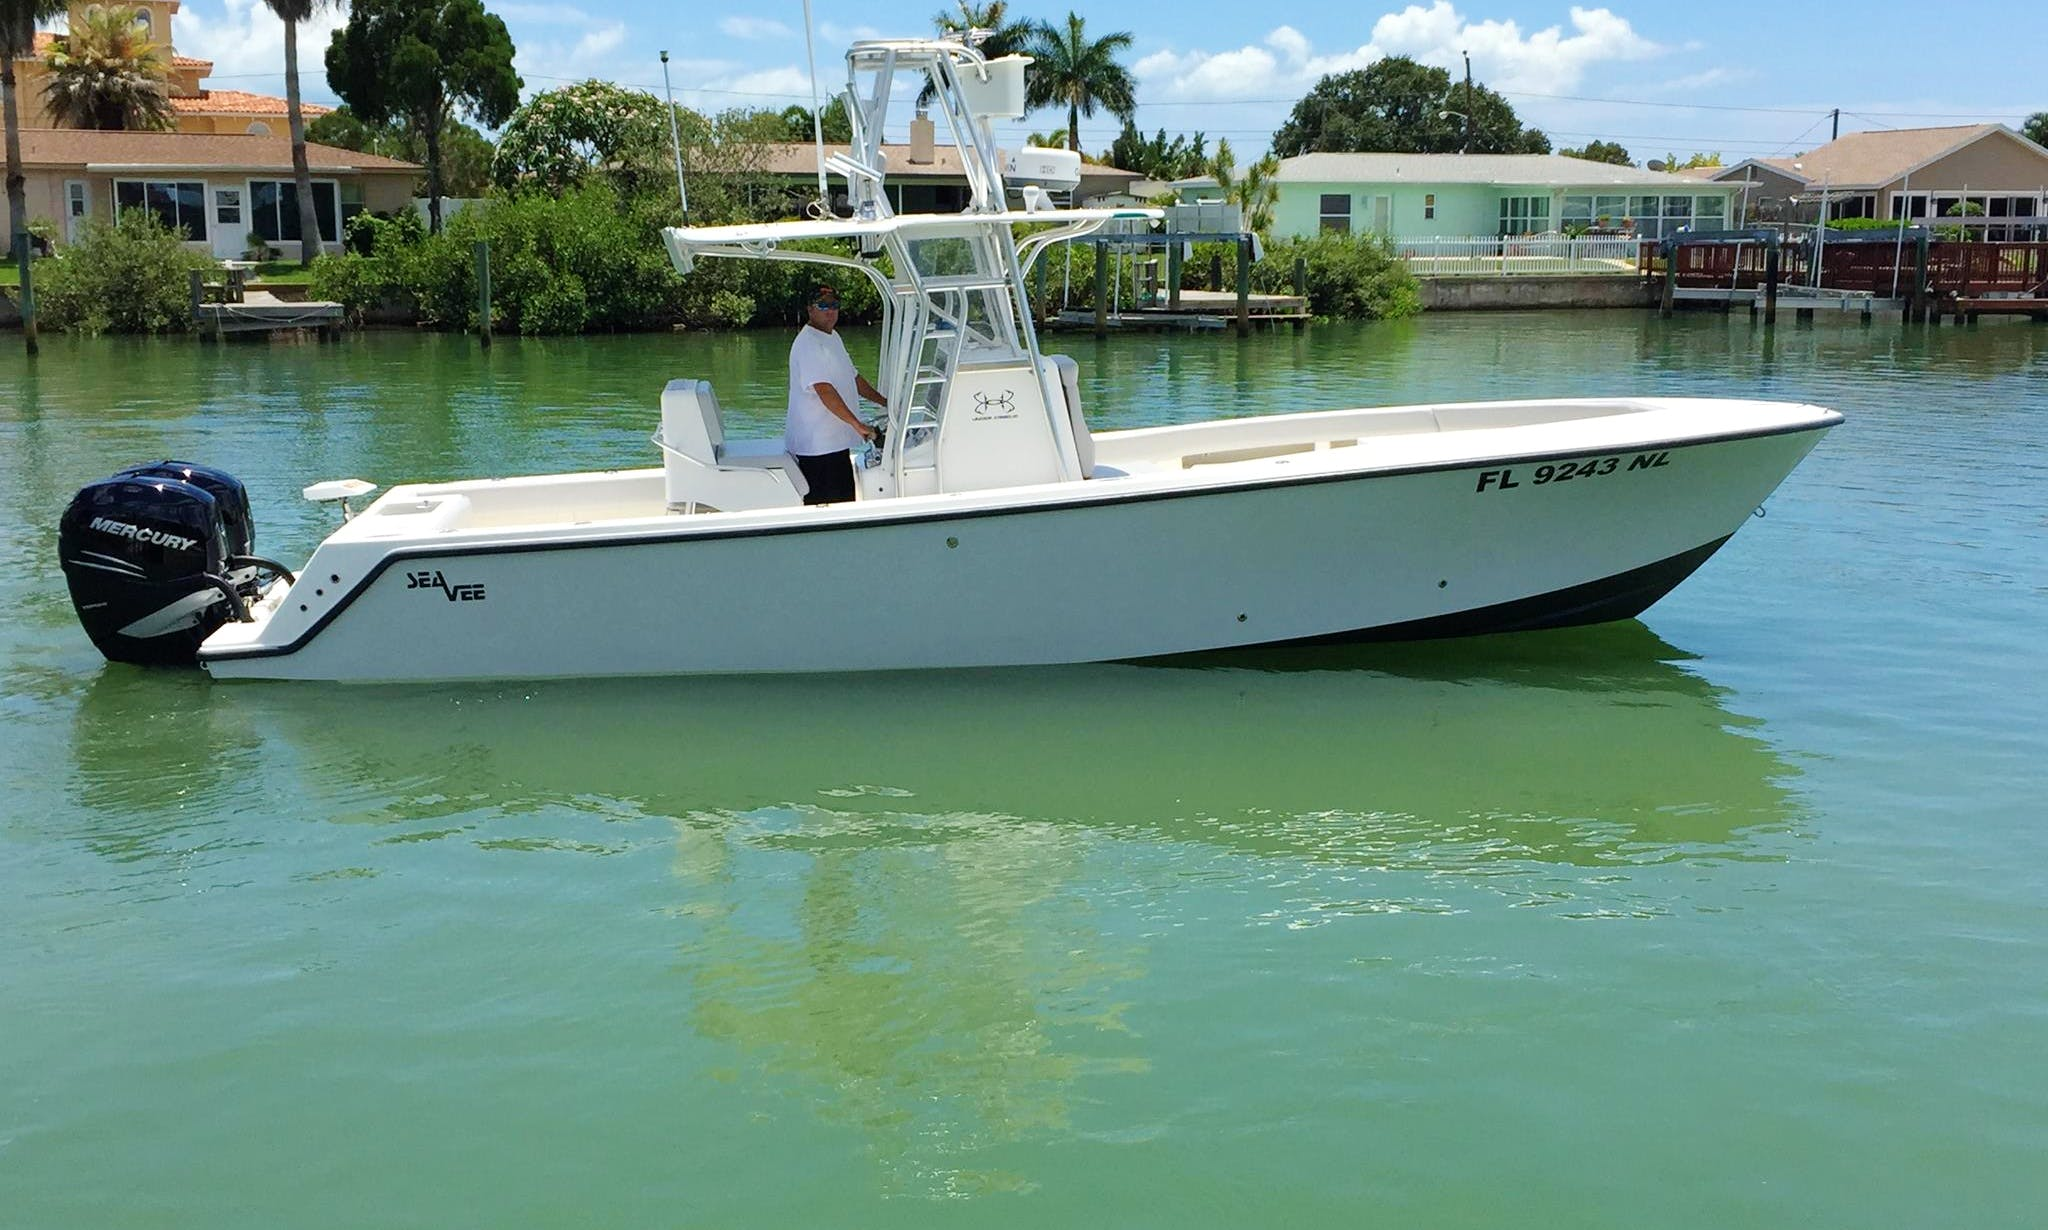 32-foot SeaVee Center Console Charter for Up to 6 people in Saint Petersburg, Florida with Capt. Chad